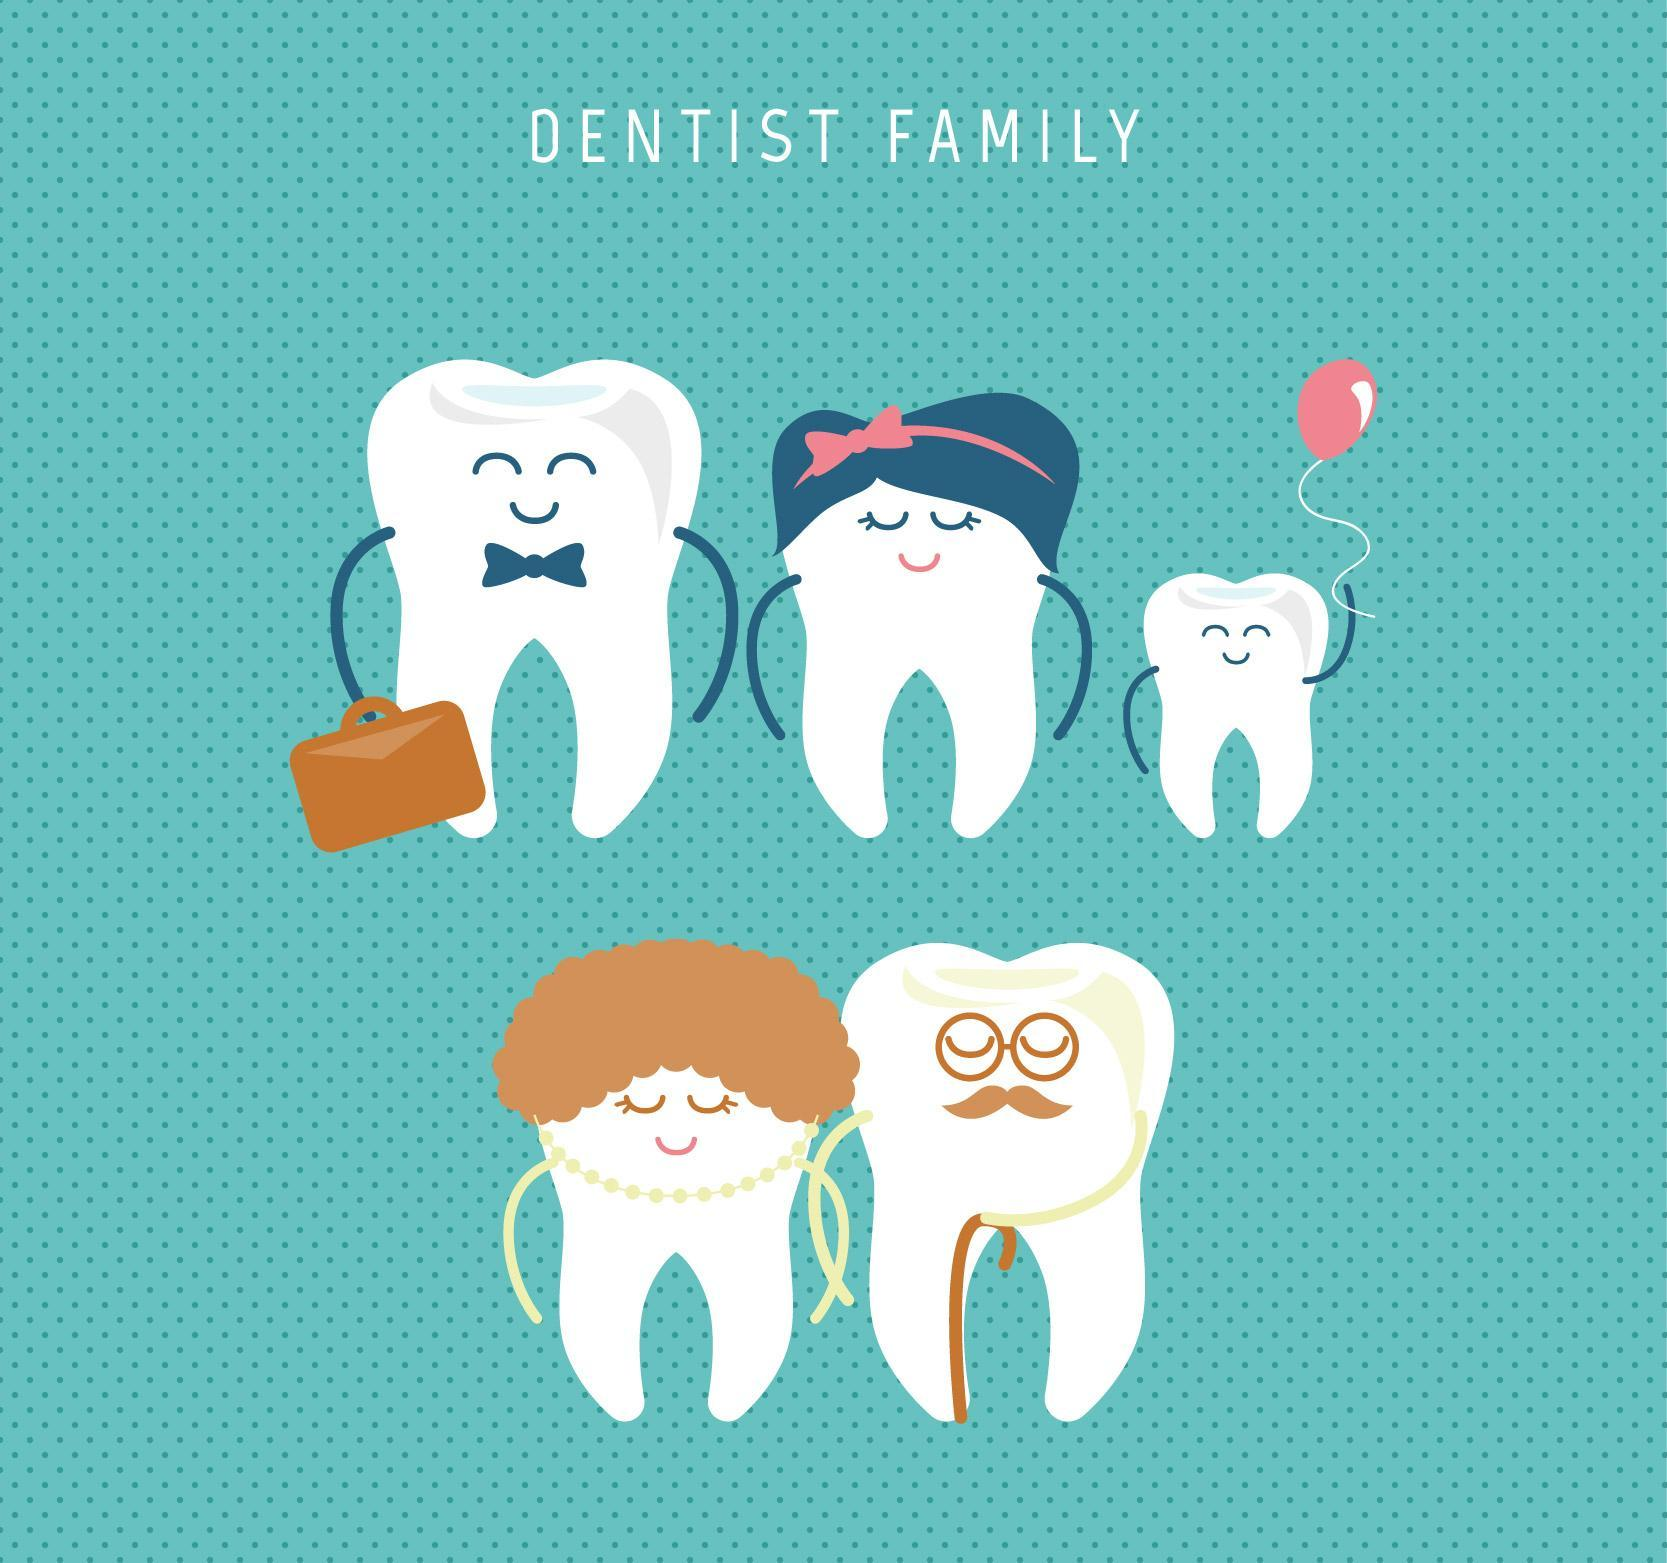 Cute Dental Family Care Wallpaper For Android Apk Download